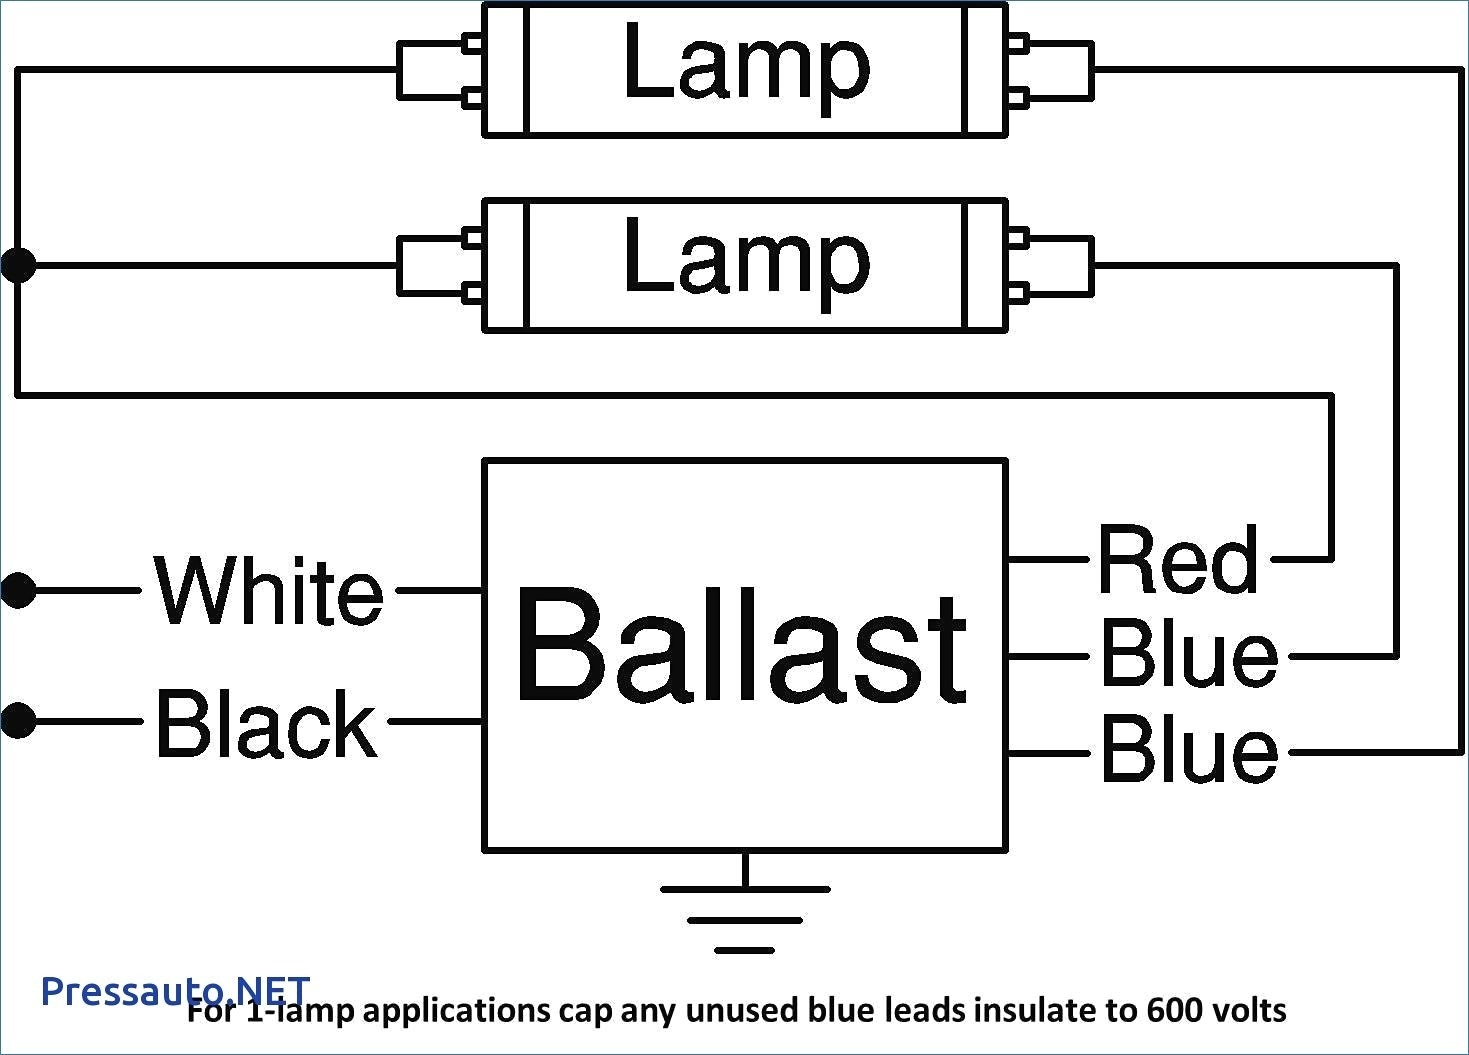 t12 ballast wiring diagram 1 lamp with 2 lamp fluorescent ballast wiring diagrams 277 volt ballast wiring diagram | free wiring diagram ballast wire diagram #13